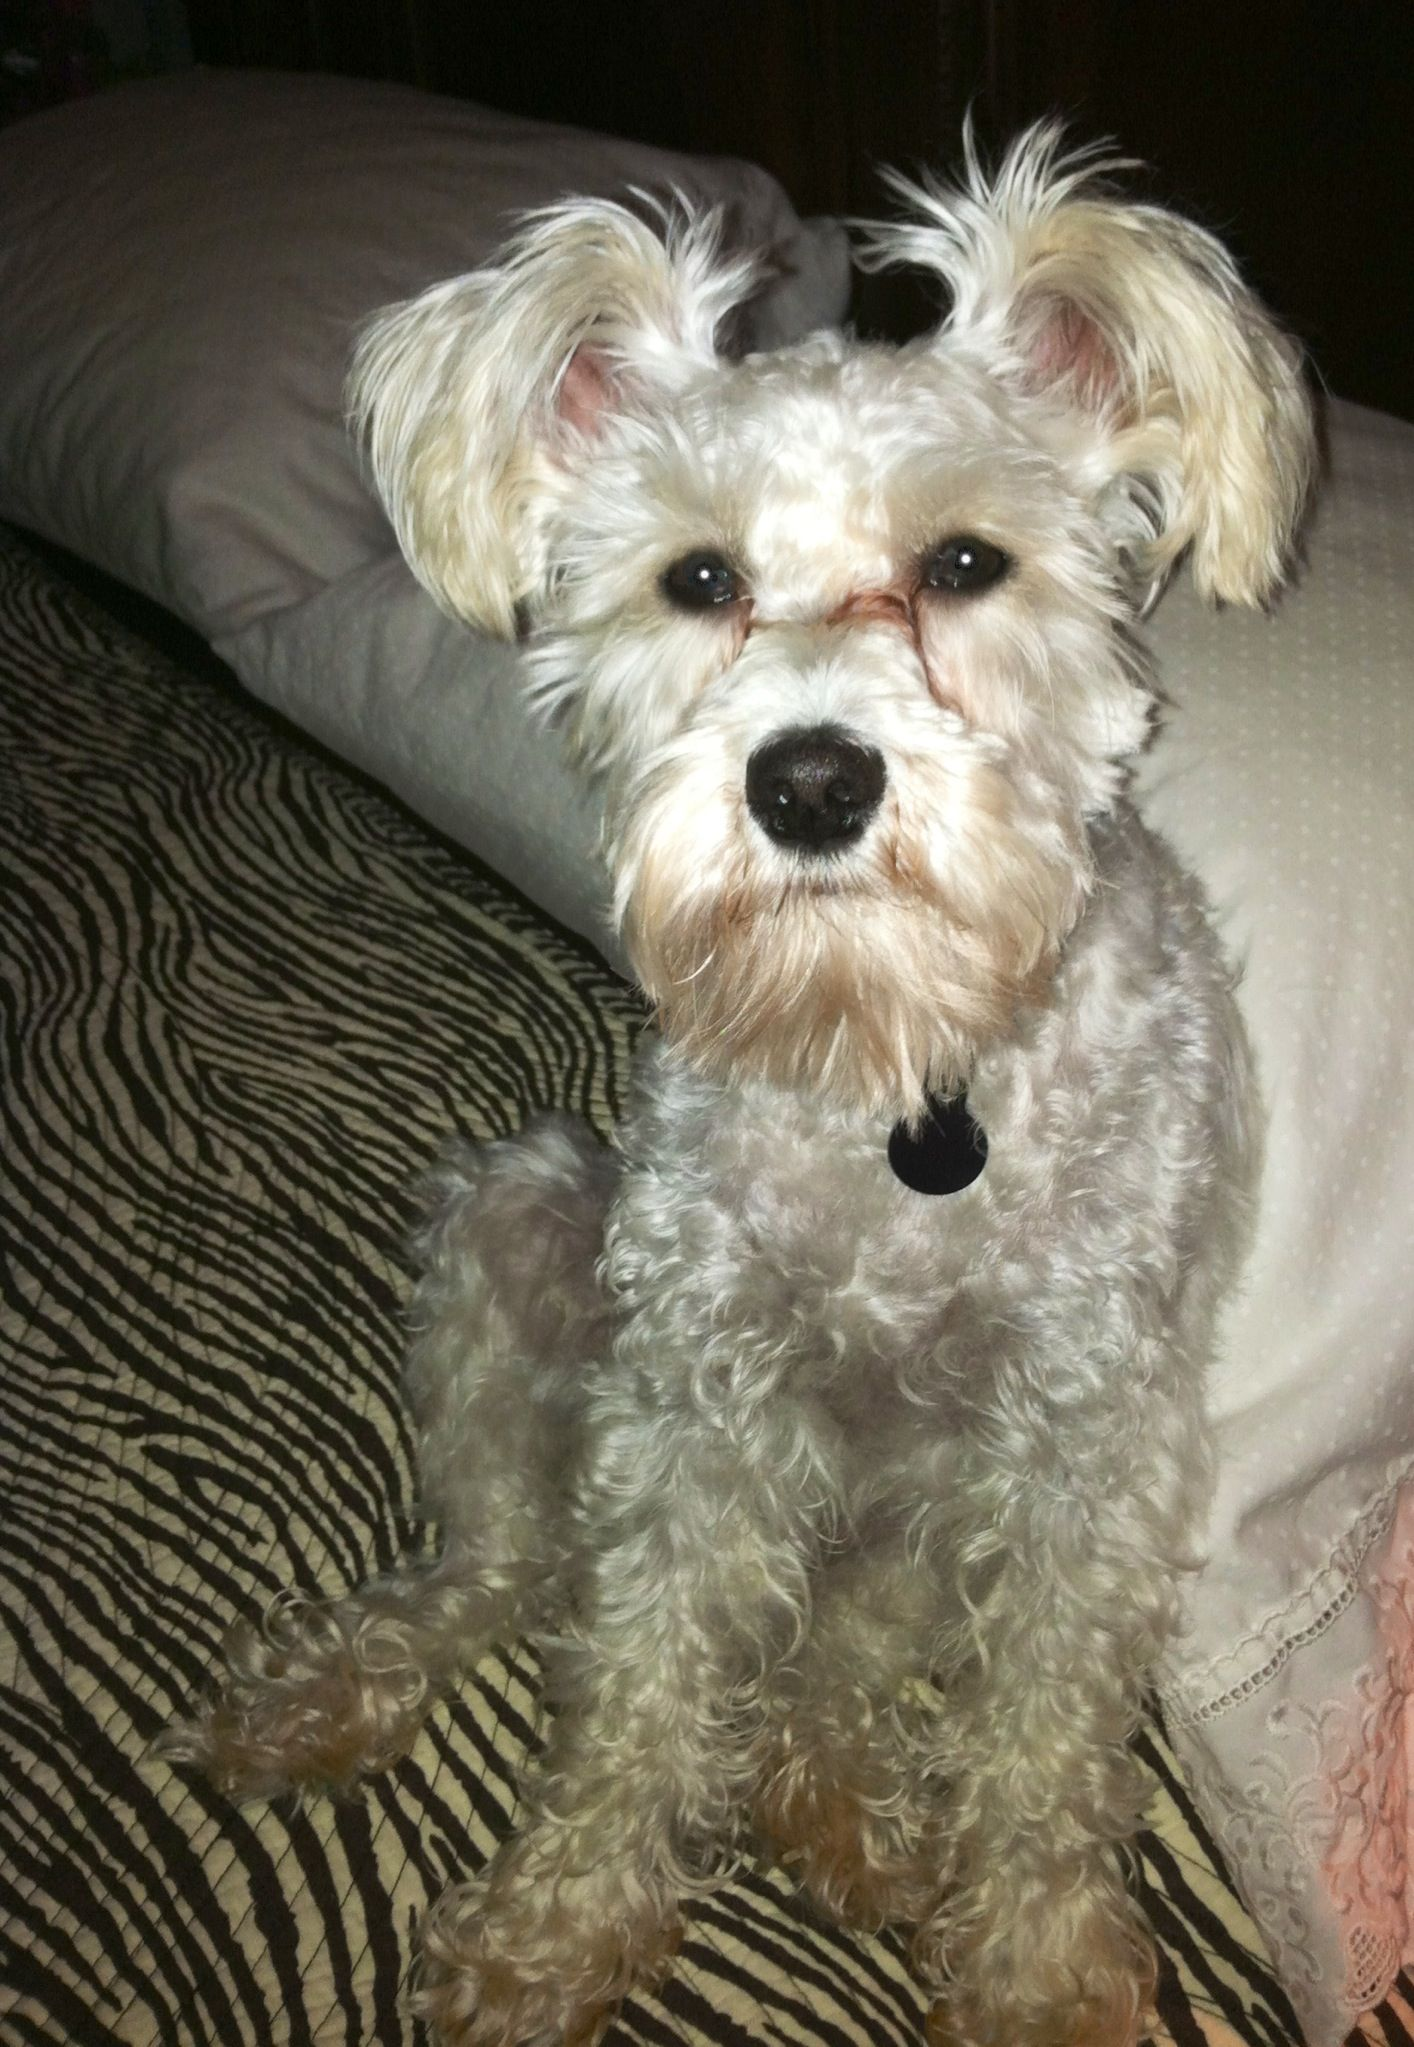 Good Night Moon From One Sweet Schnoodle Schnoodle Dog Love